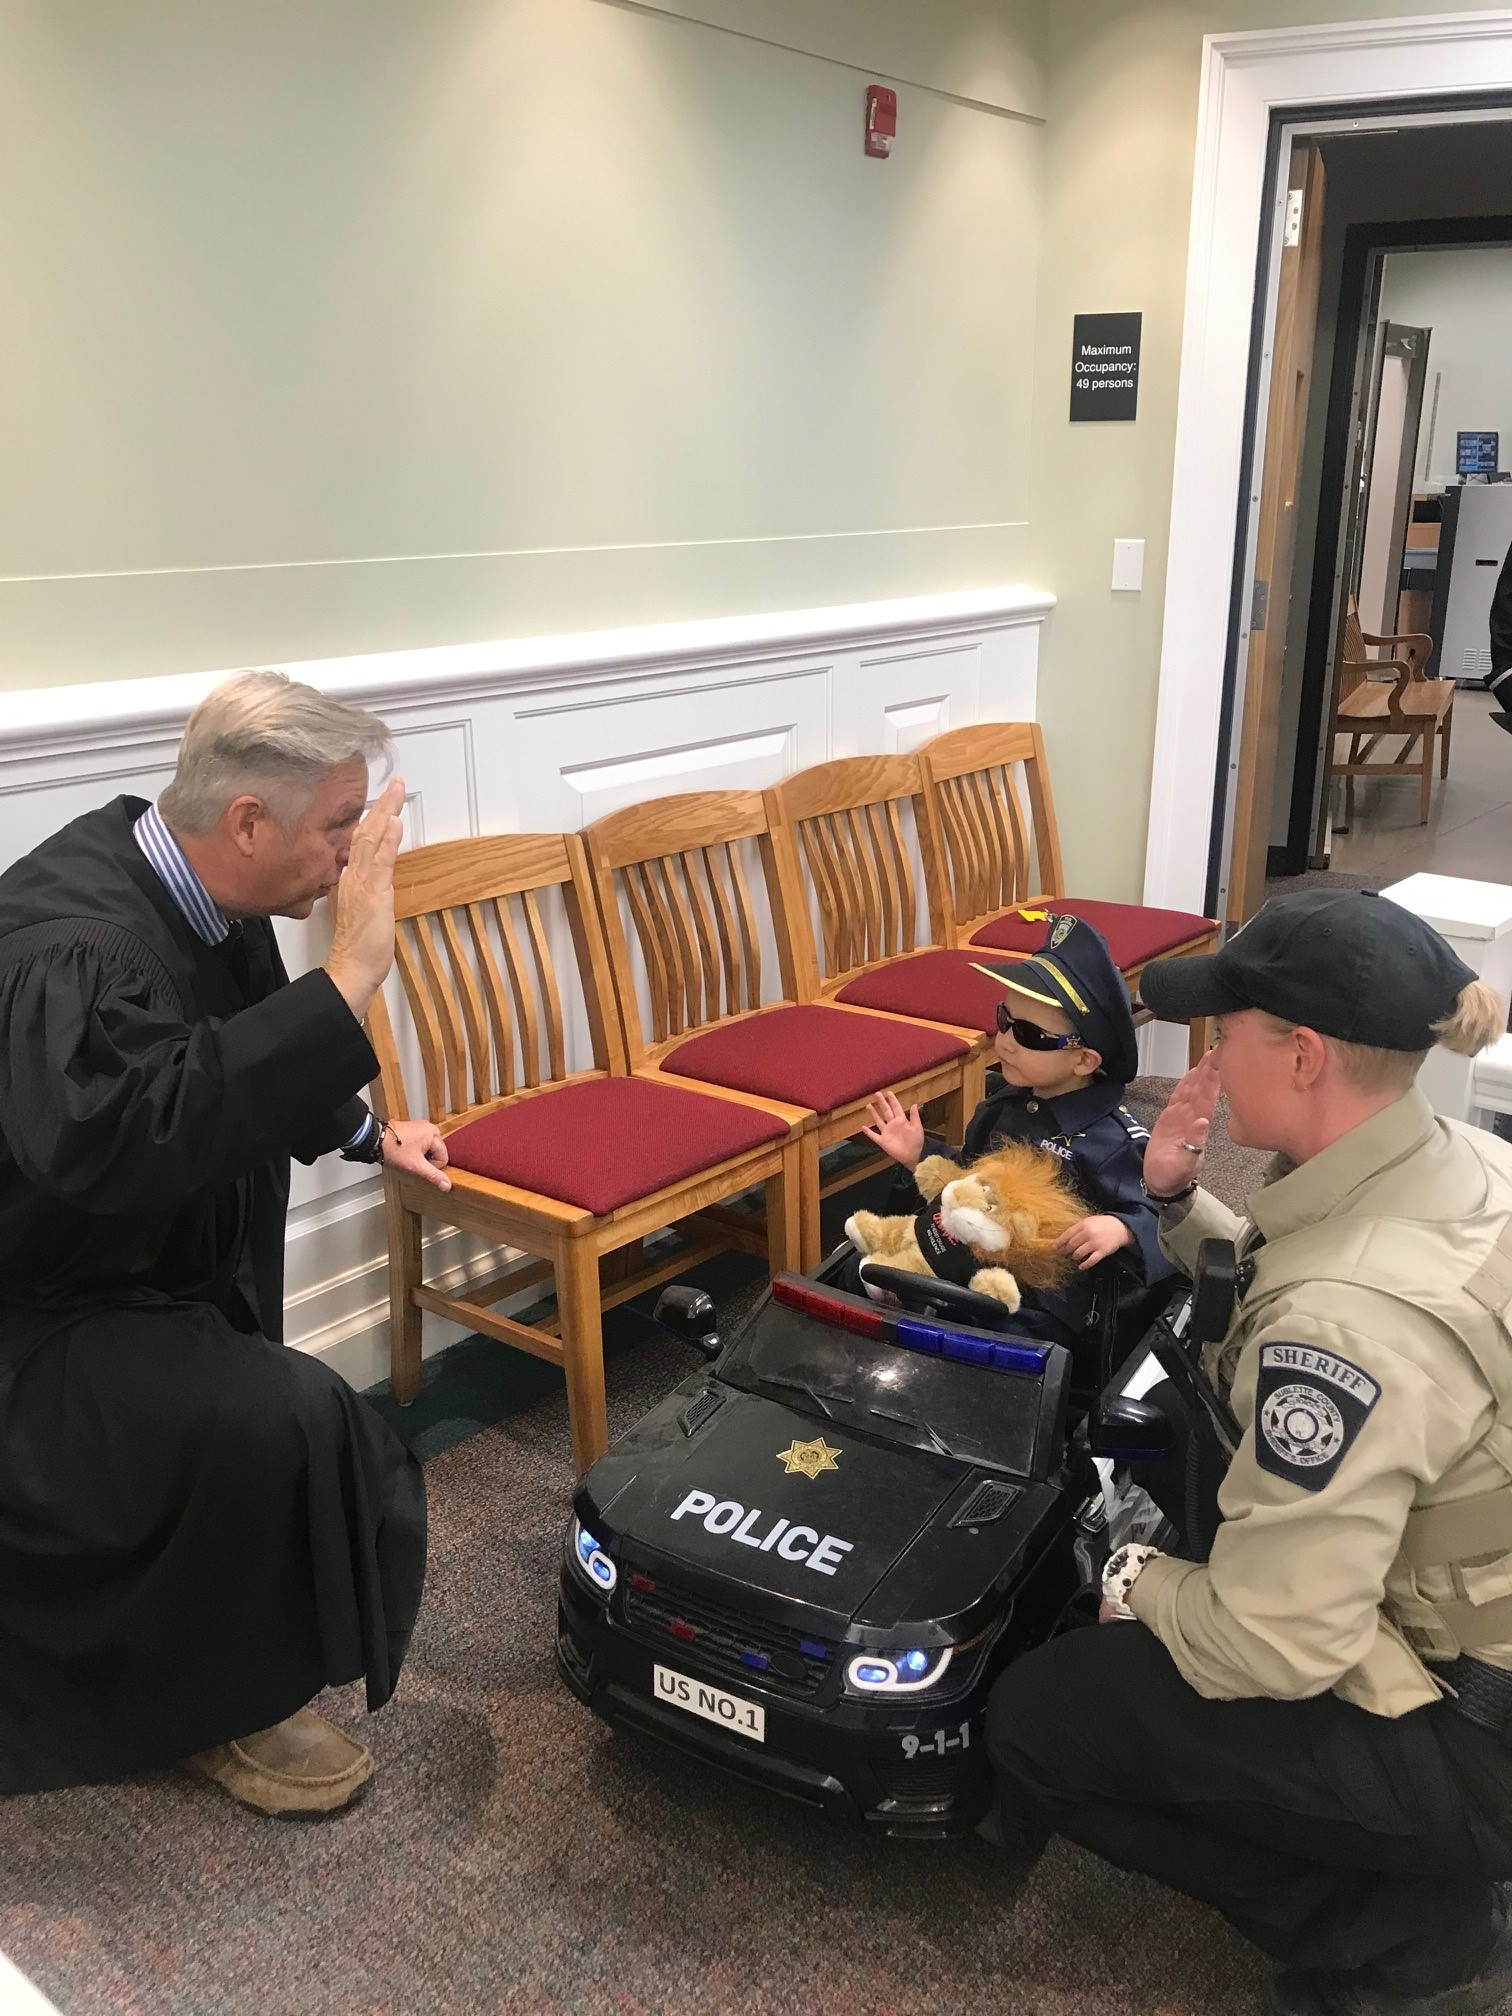 (Pinedale, Wyo – August 31st, 2021) SCSO swears in honorary junior Deputy in ceremony in Pinedale.